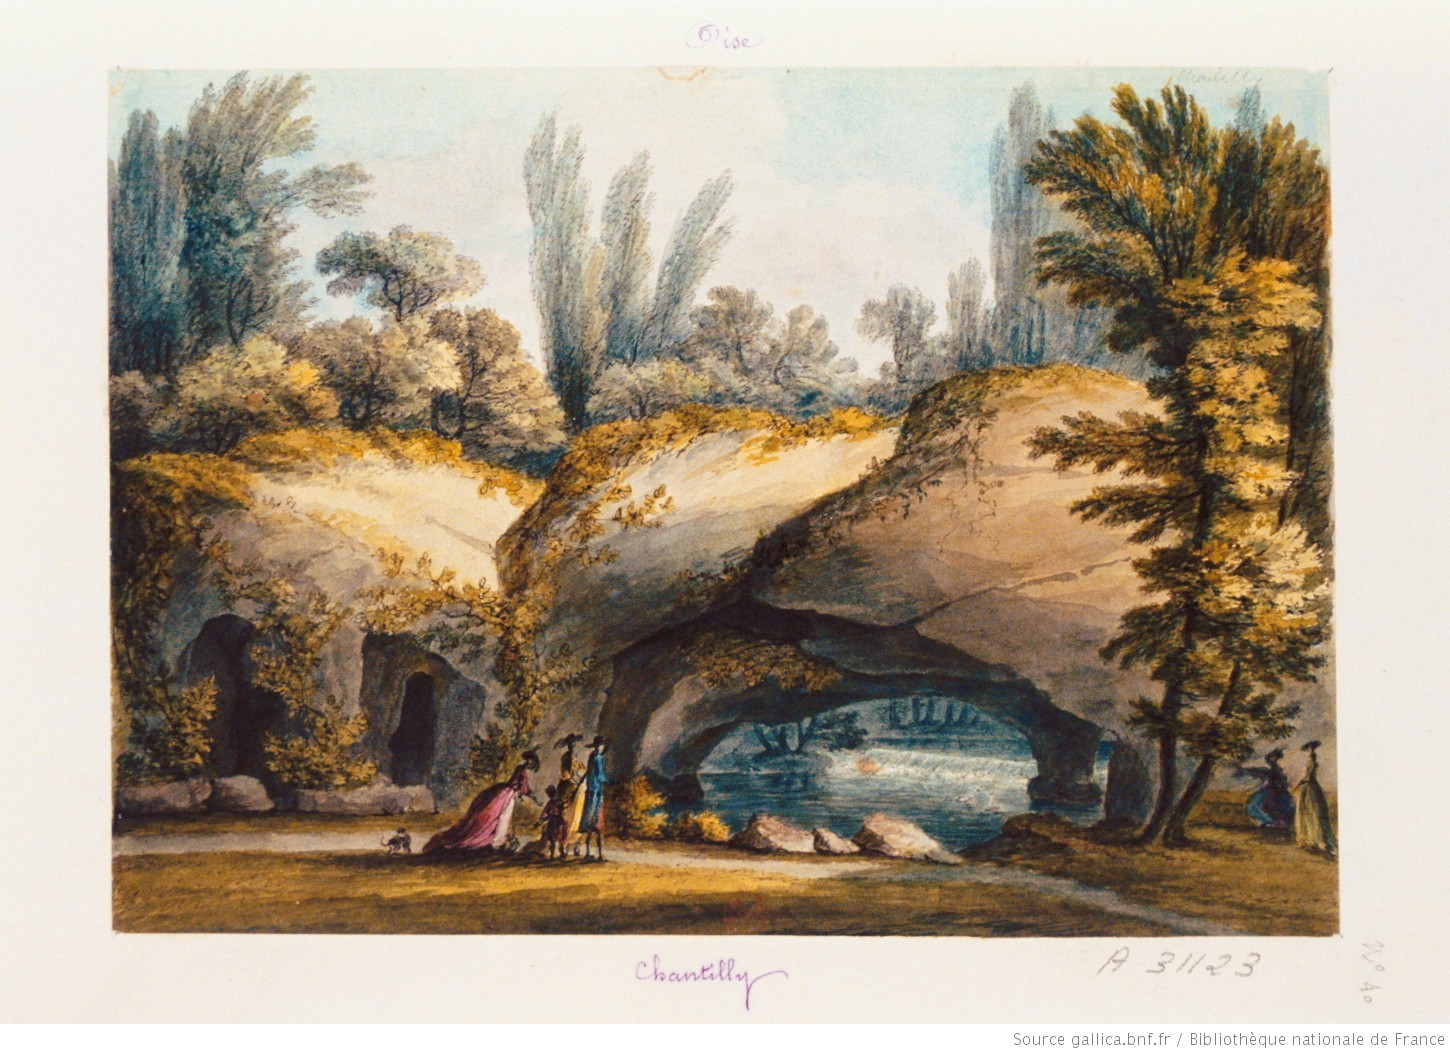 Chantilly vue de la grotte du jardin anglais dessin for Jardin anglais definition